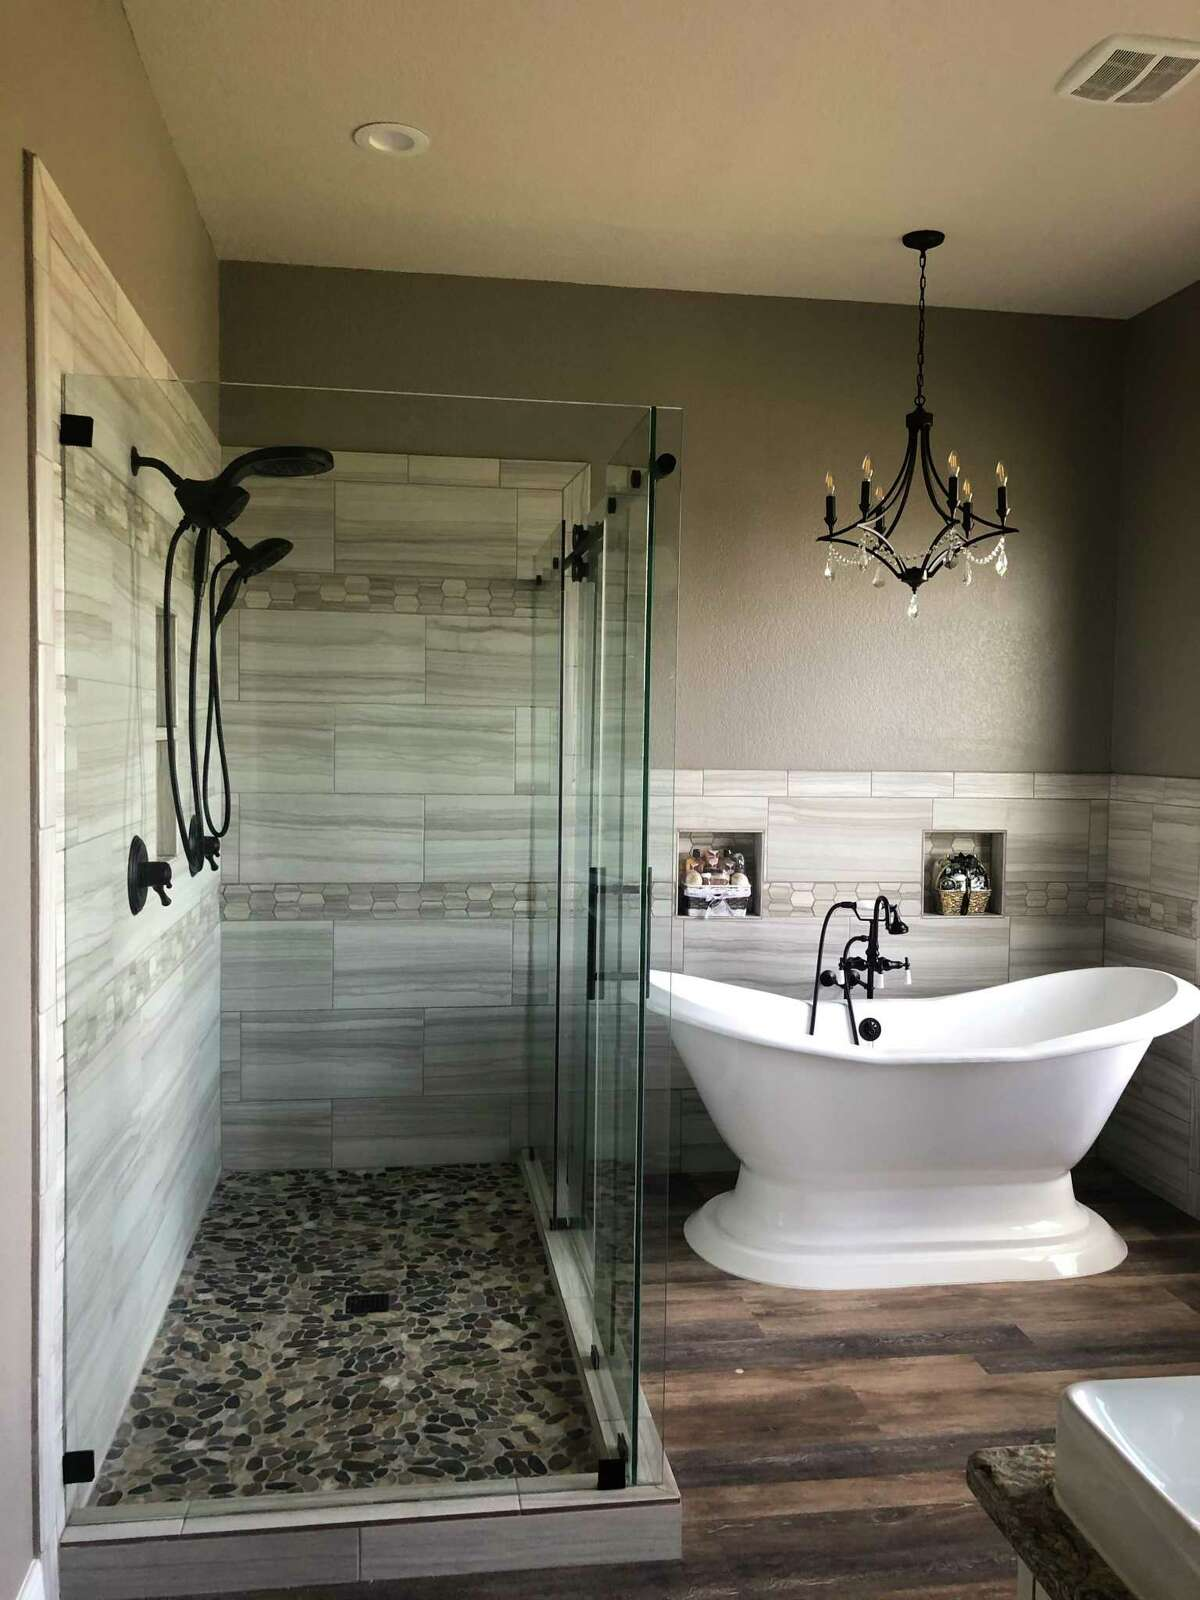 Free-standing soaking bathtubs have a deeper tub than traditional bath/shower combos for a more luxurious soaking experience.